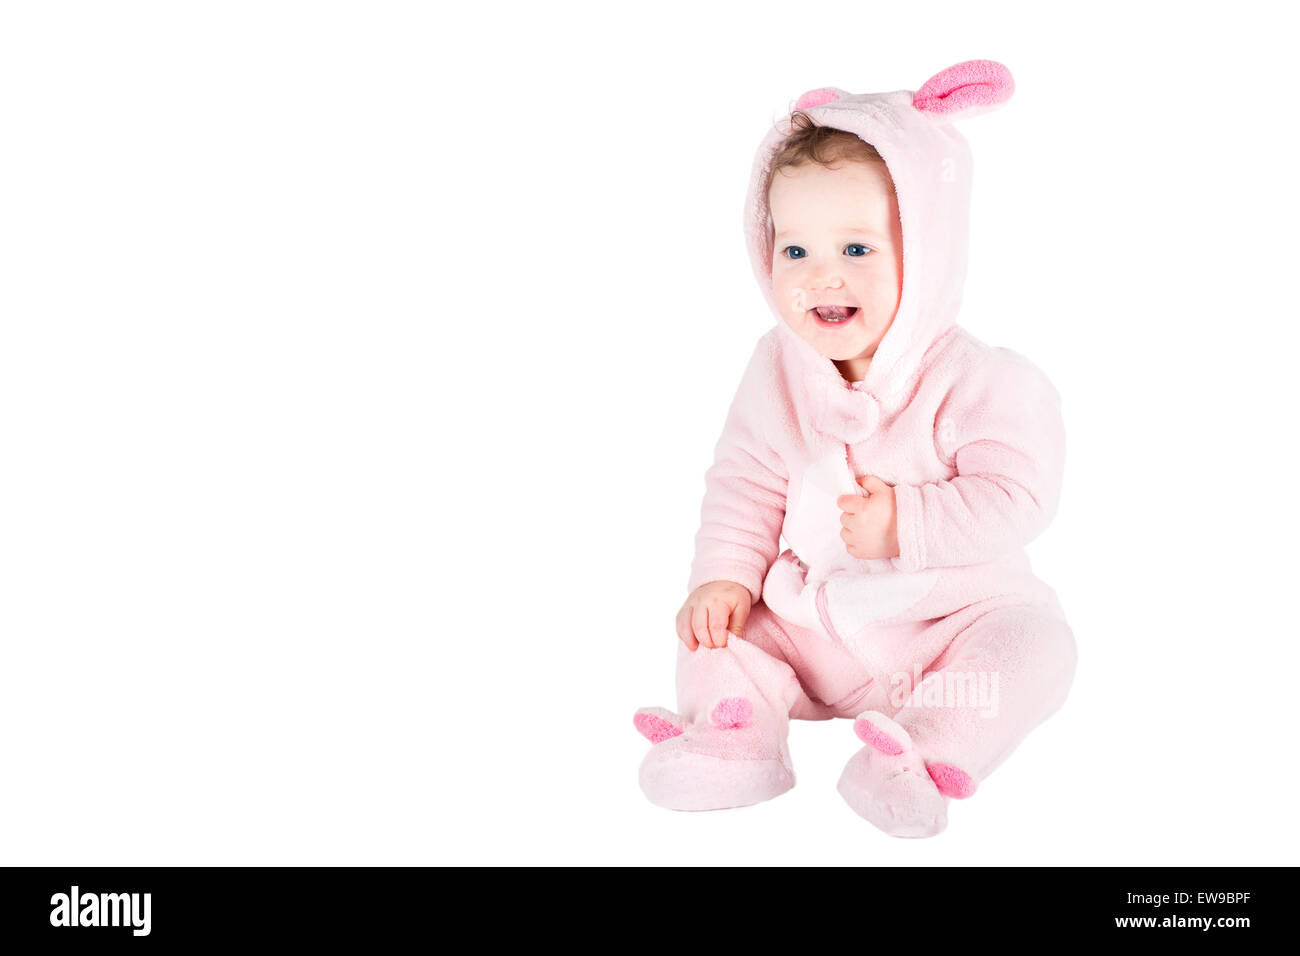 Funny baby in a bunny custom, isolated on white - Stock Image